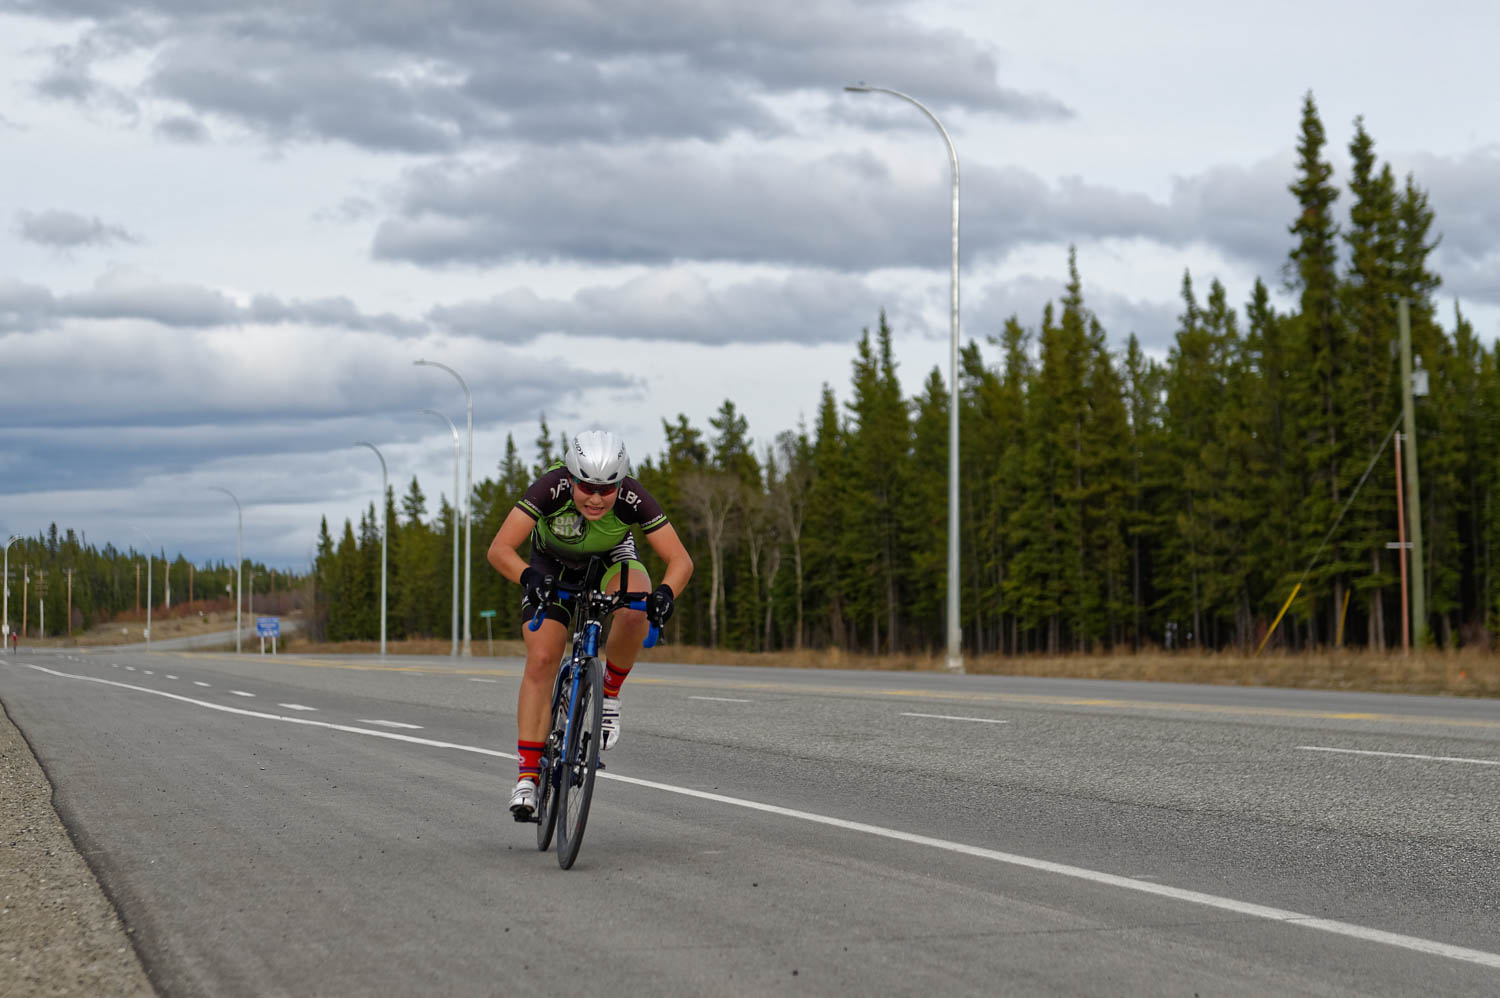 Final sprint in her first Time Trial on the Alaska Highway. Can't hide the mountain biker position yet! Much learning to do in this new discipline.